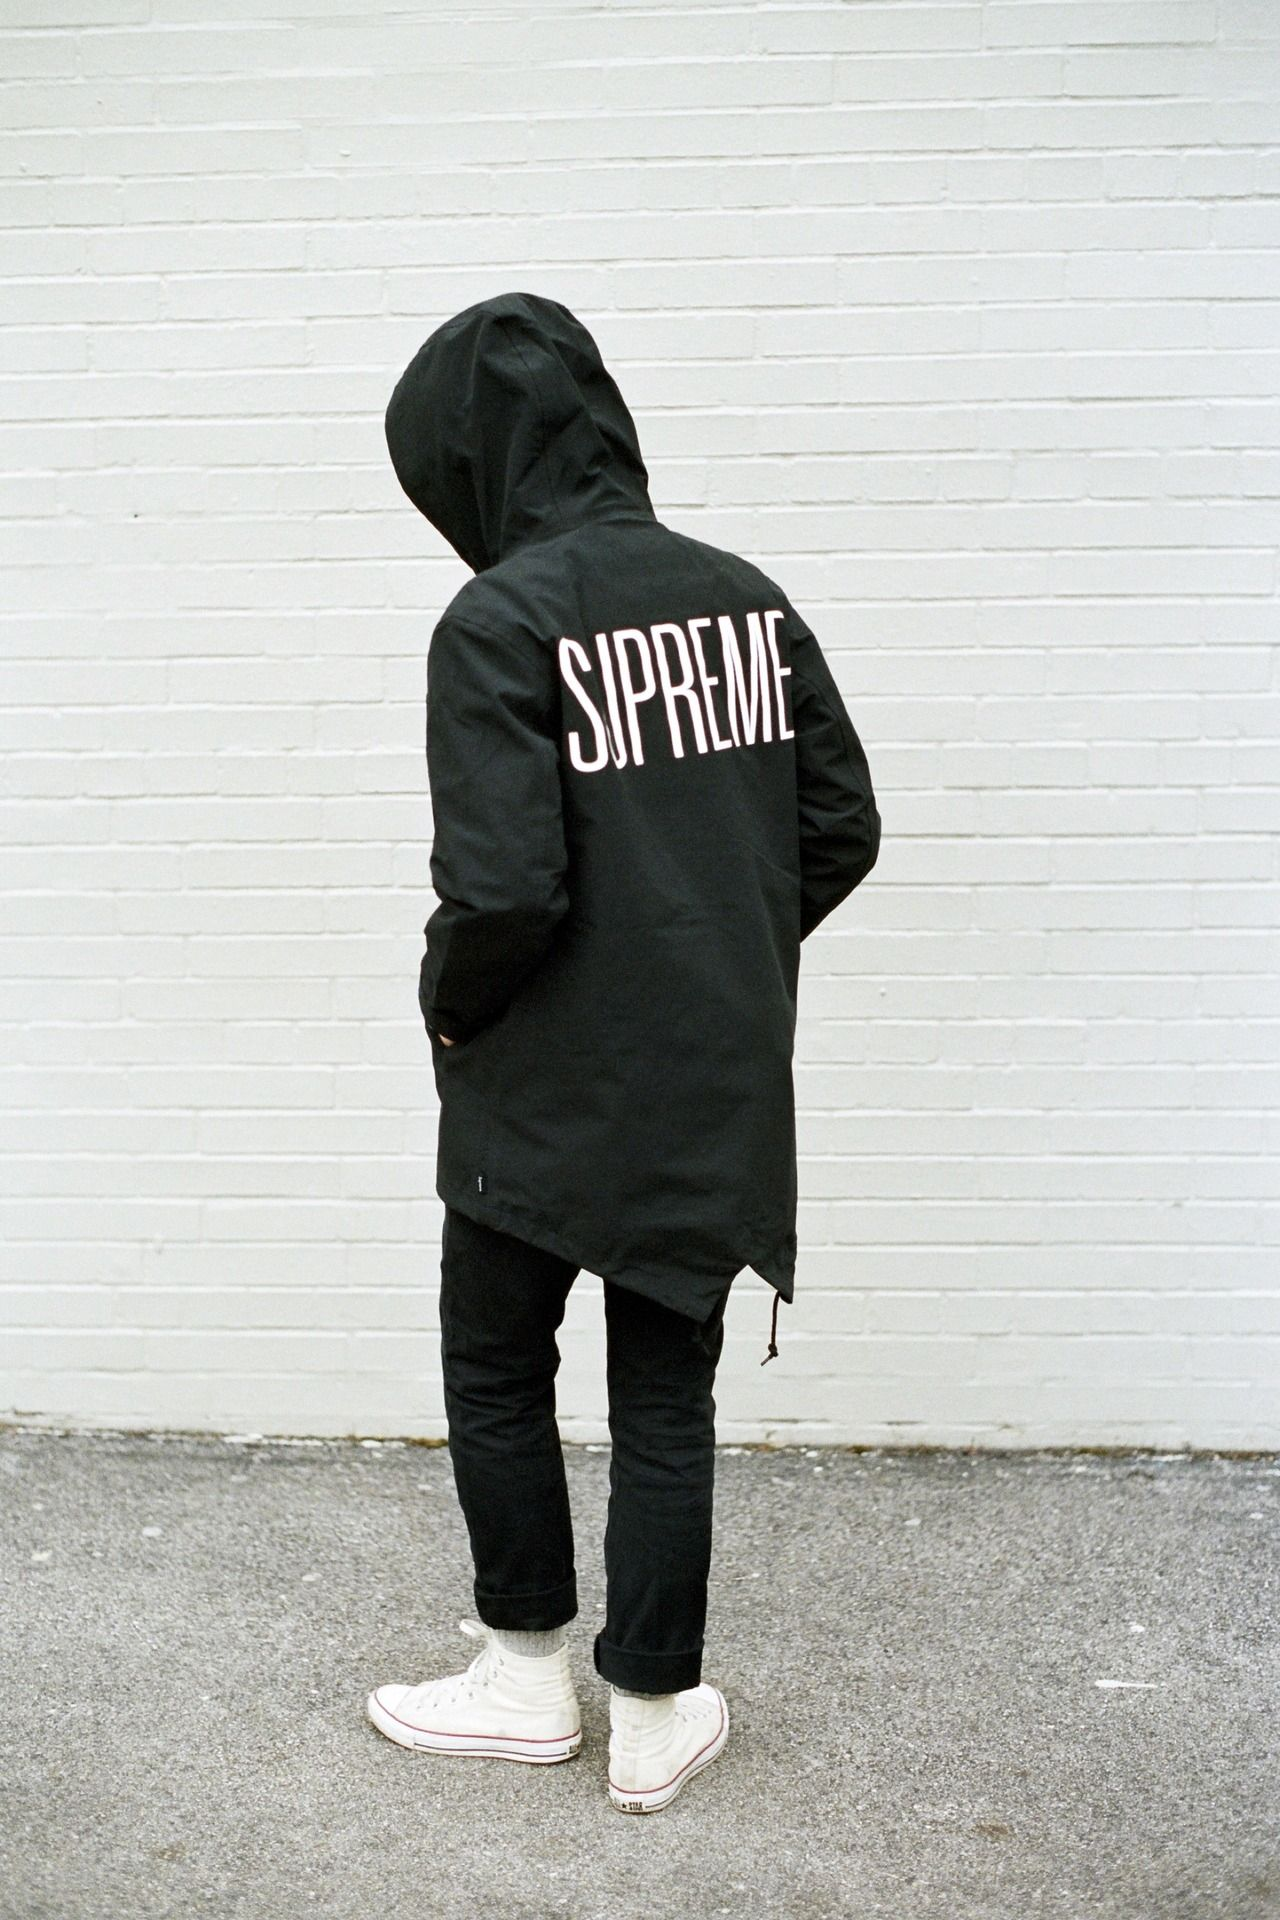 wholesale dealer 92925 6ff8d streetwear london   Tumblr